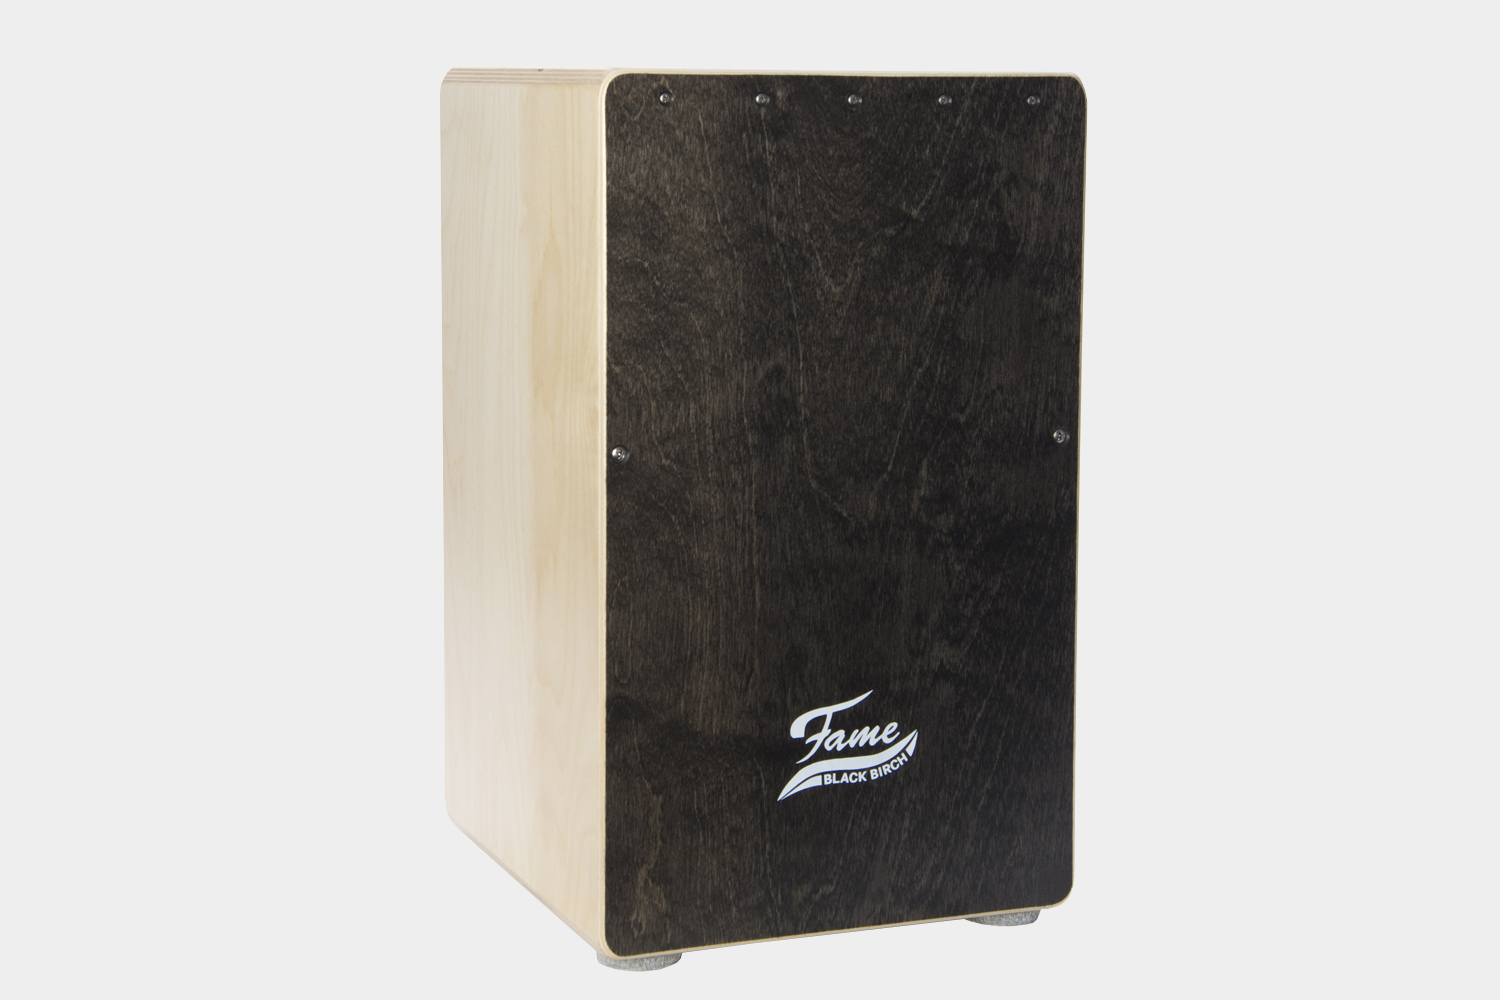 Fame Black Birch Cajon